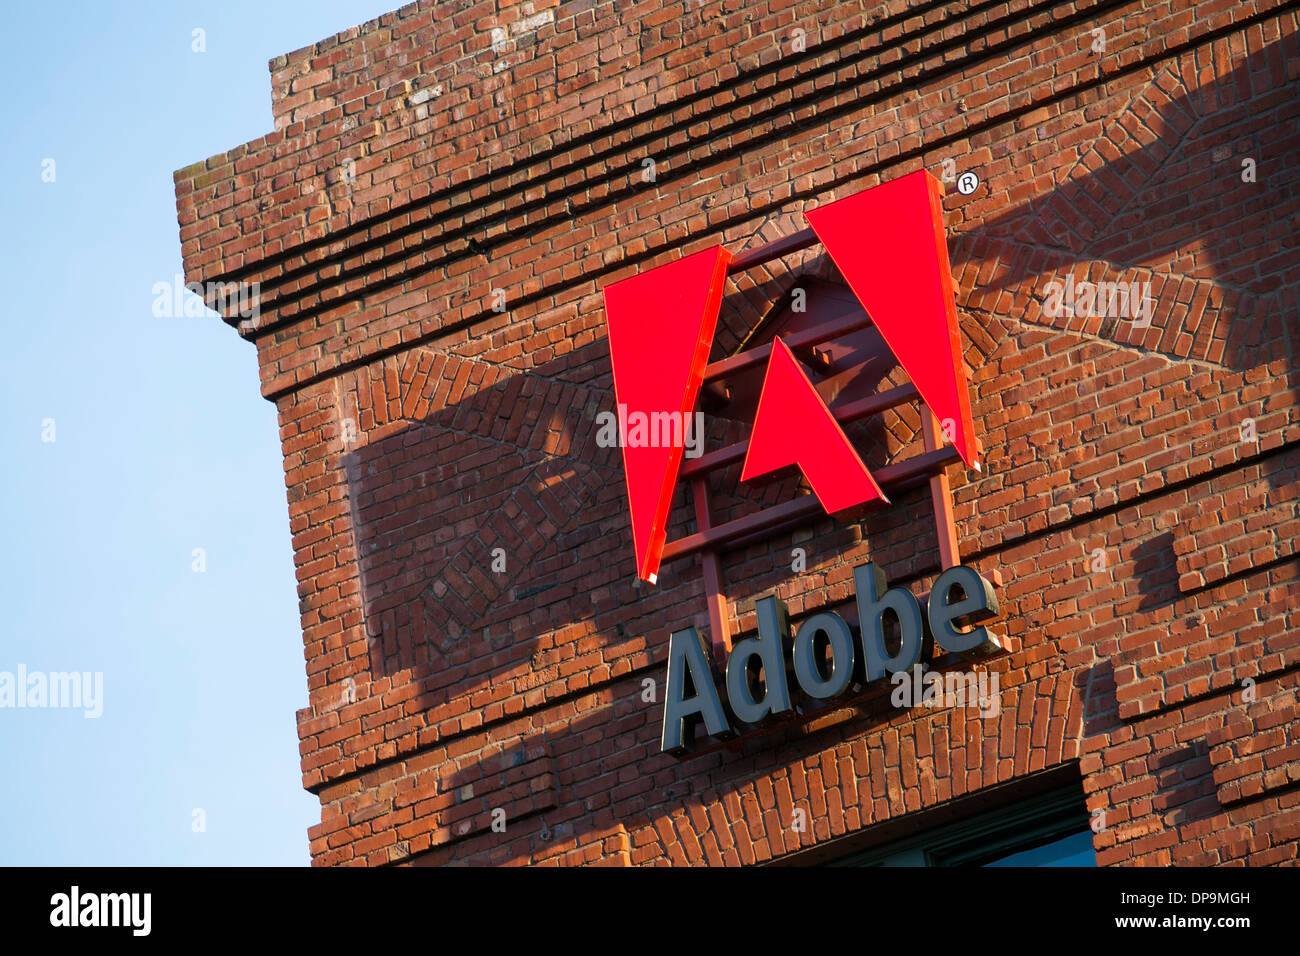 adobe san francisco. An Office Building Occupied By Adobe Systems In San Francisco, California. - Stock Image Francisco